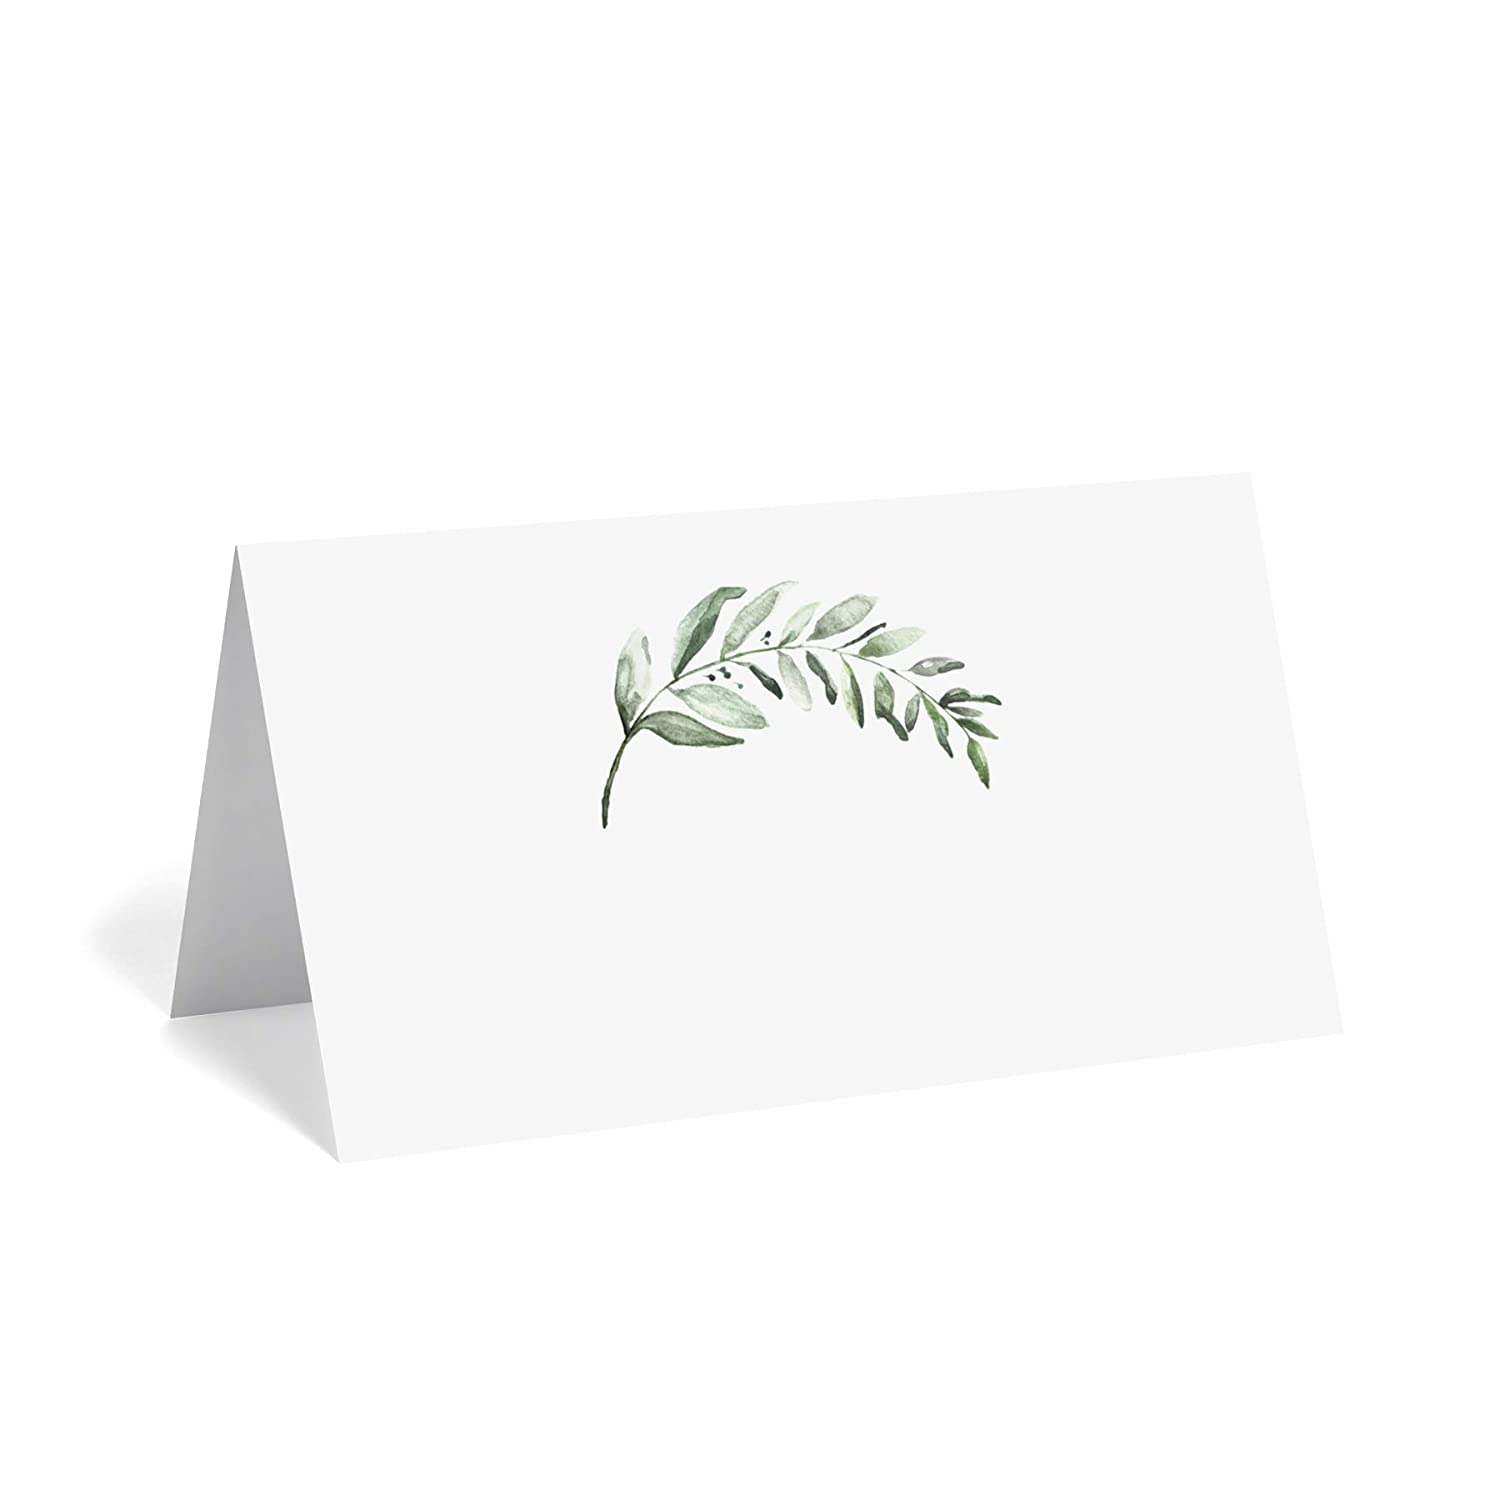 Bliss Collections Greenery Place Cards for Wedding or Party, Seating Place Cards for Tables, Scored for Easy Folding, 50 Pack, 2 x 3.5 Inches